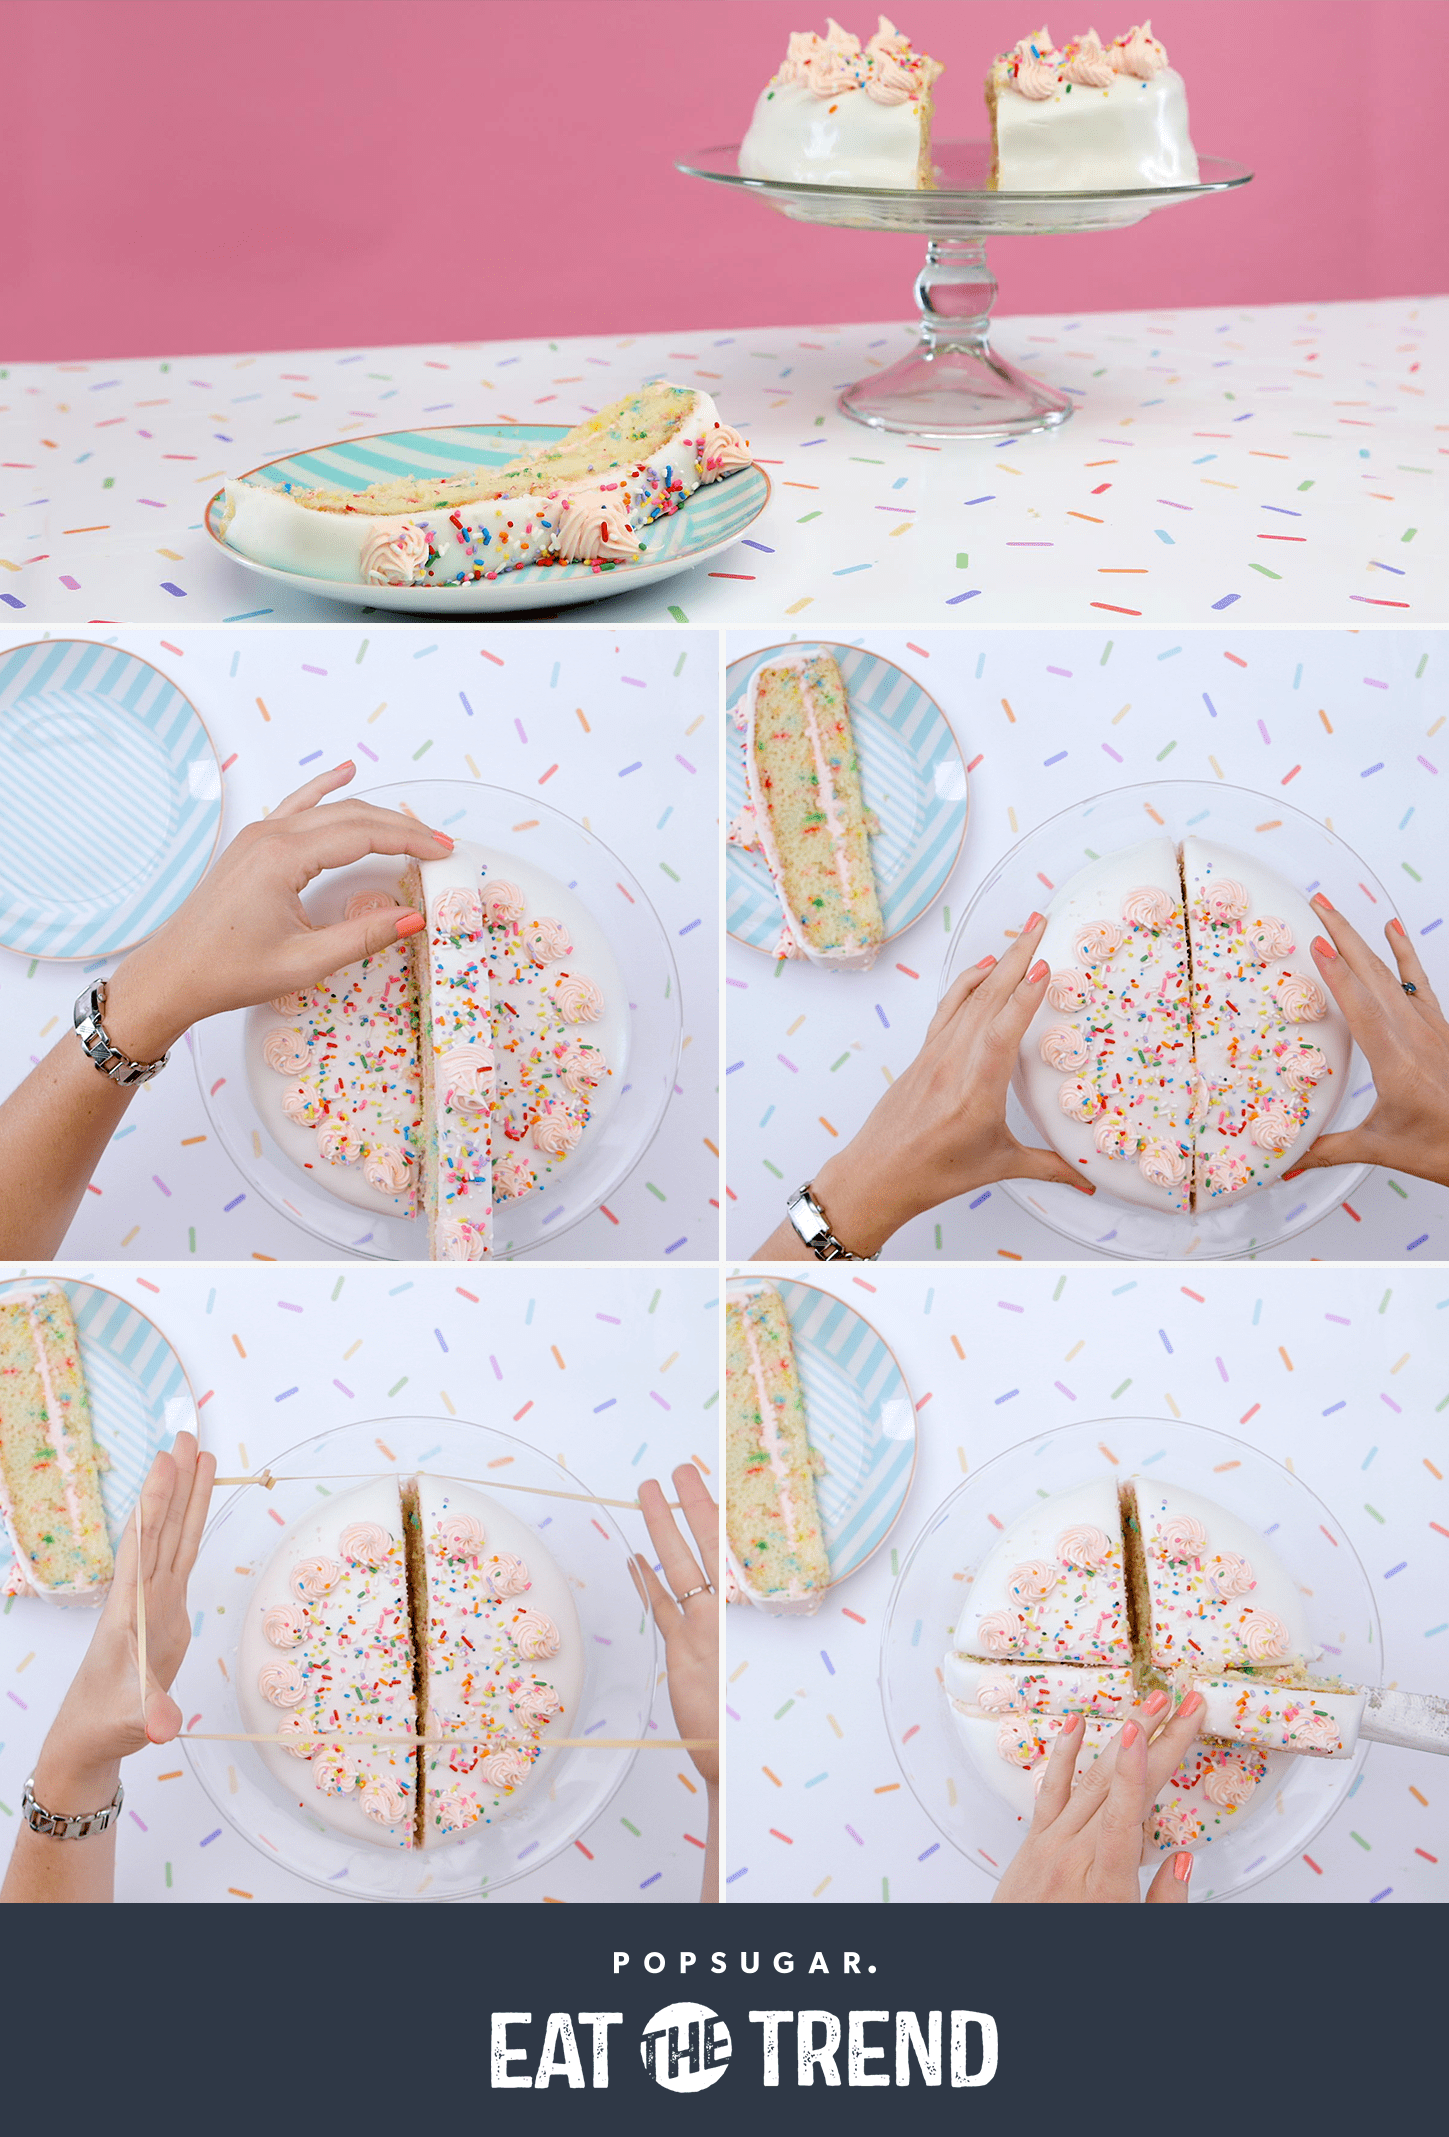 how to perfectly cut a cake